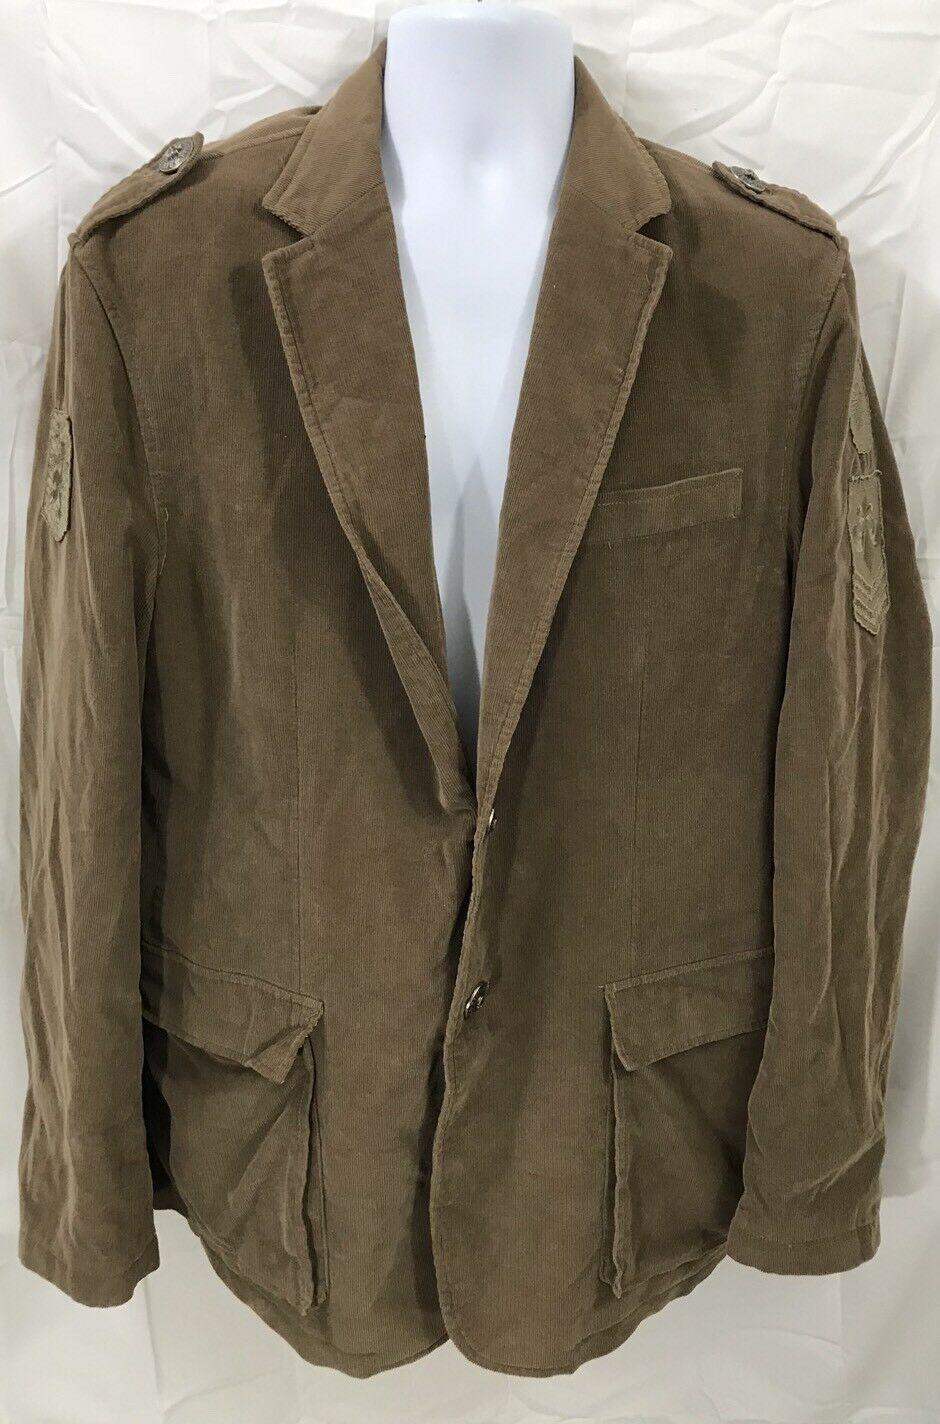 AFFLICTION  Braun Corduroy Sportcoat  Patched 2 button  Herren Größe Large (44-46)